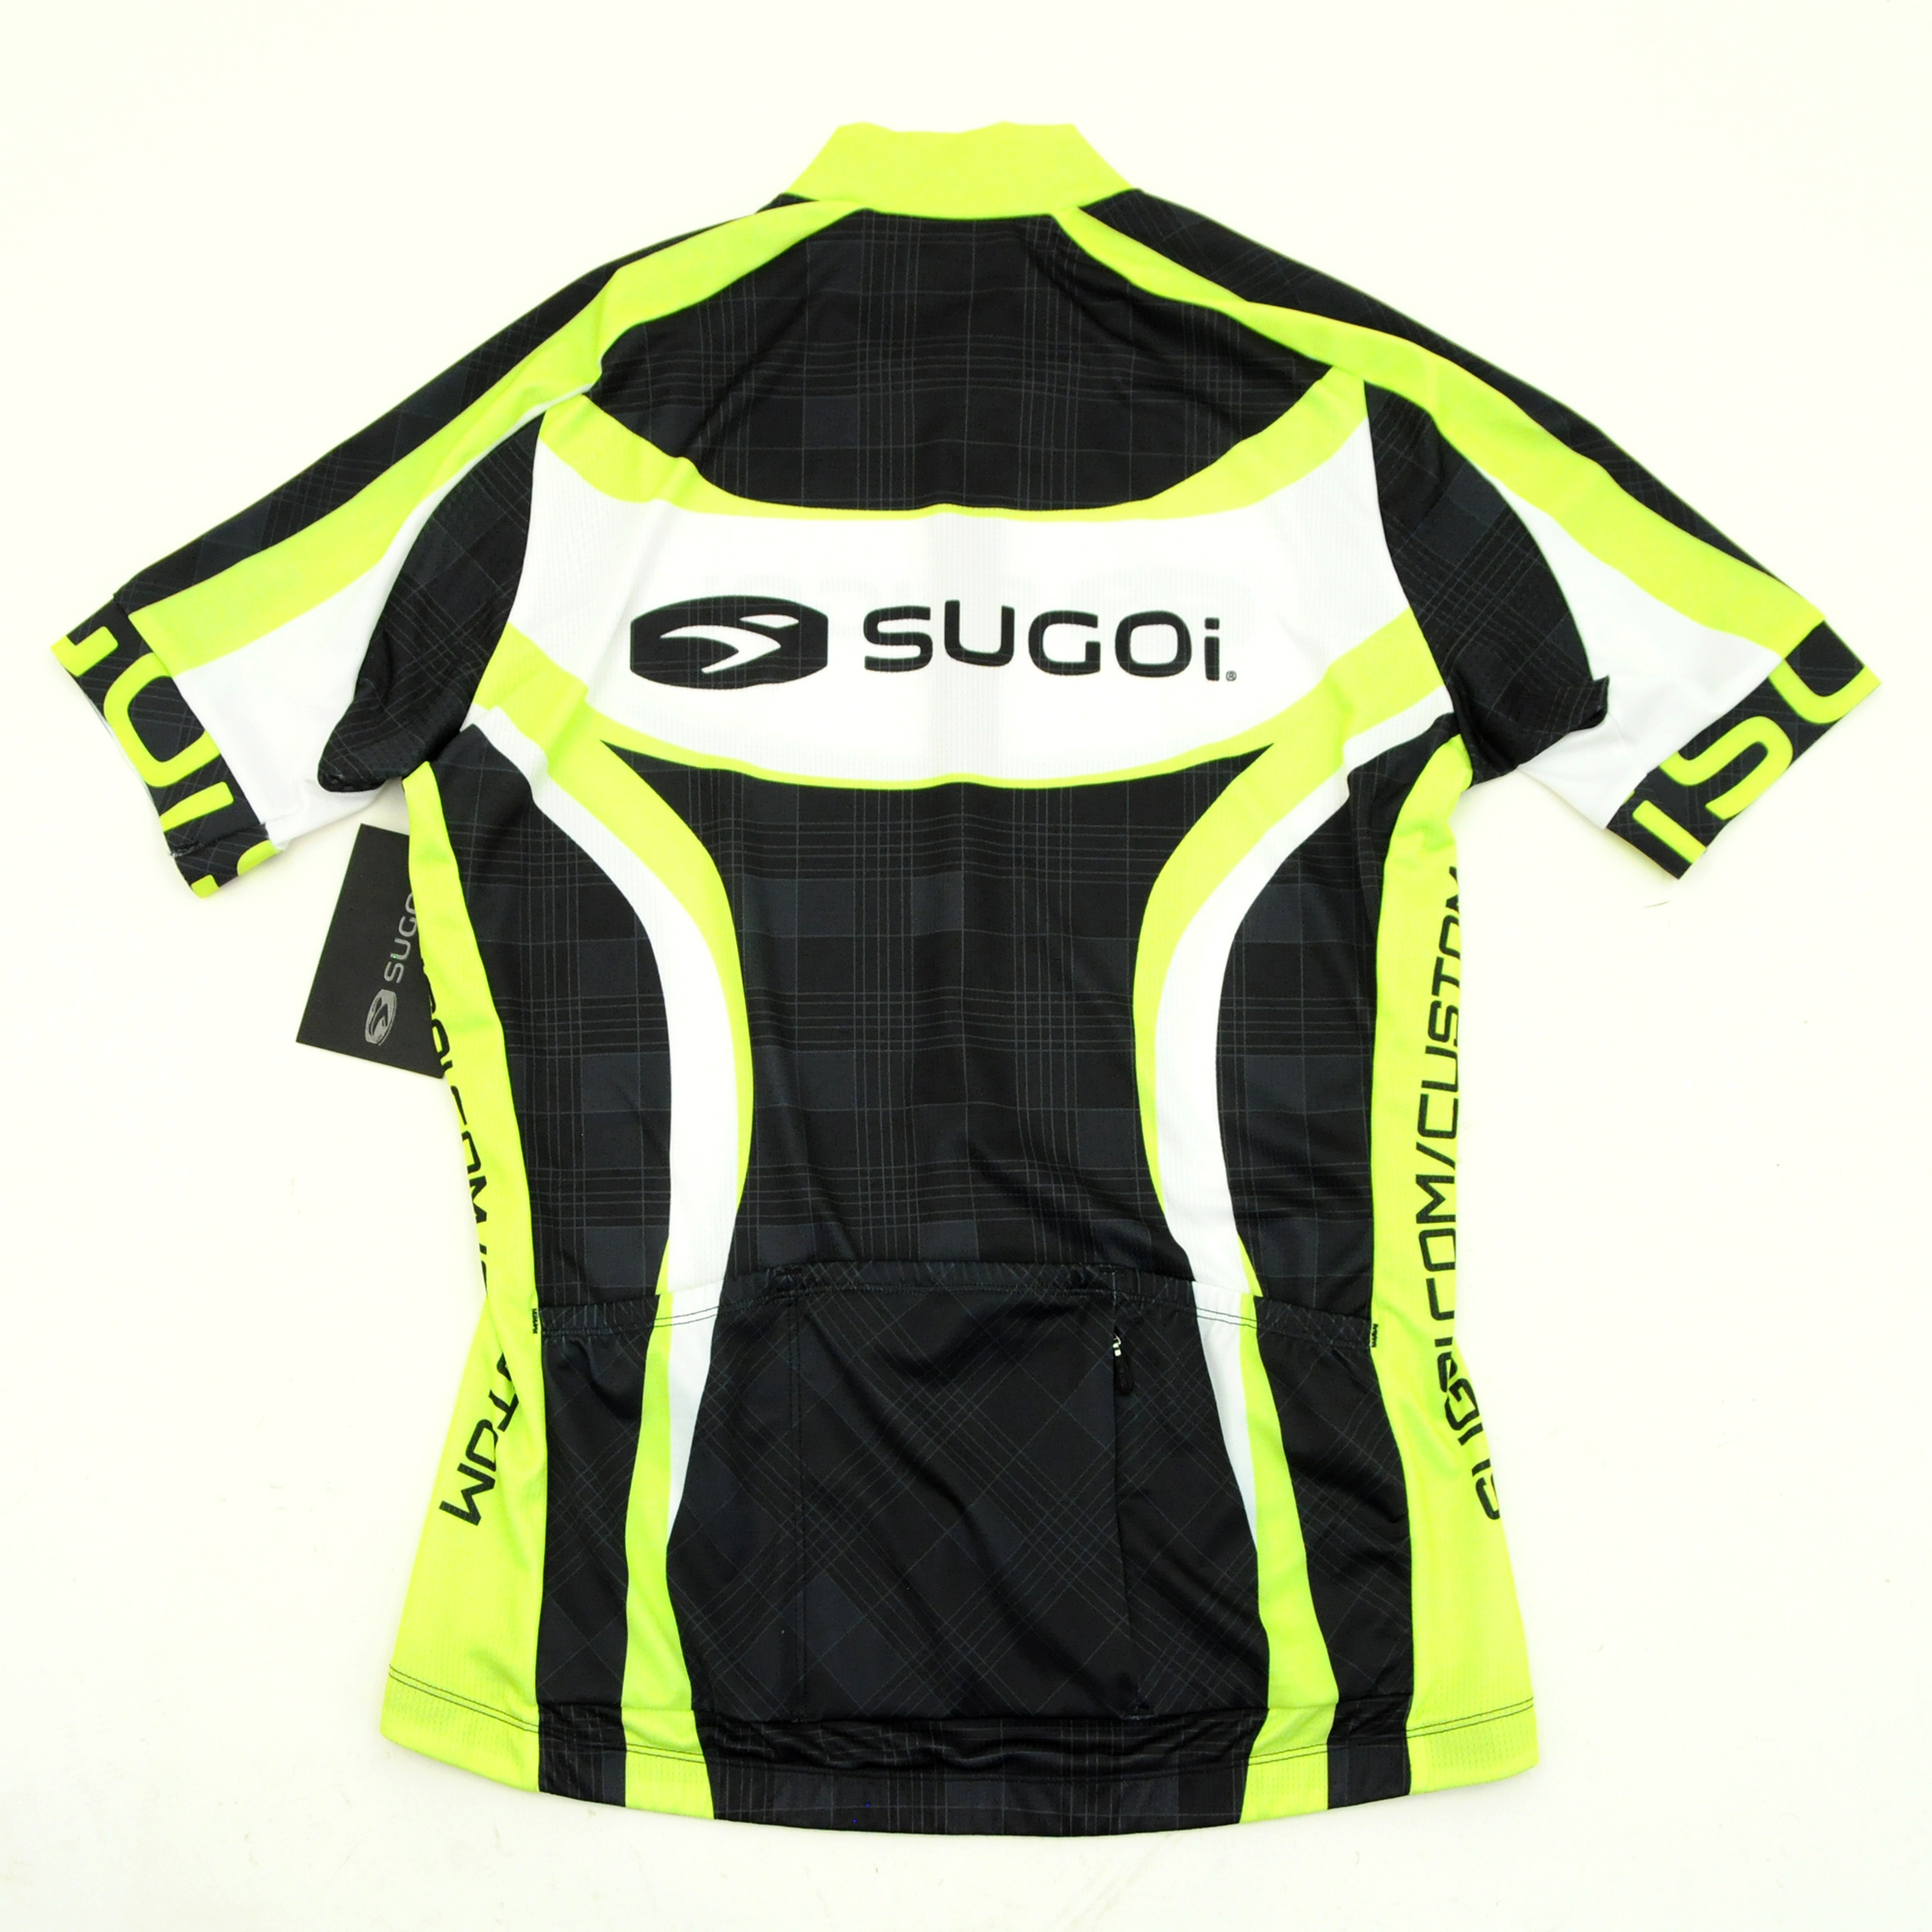 Sugoi RS Team Cycling Short-Sleeve Jersey Cannondale Green Black White  Medium 0e1bd23ce